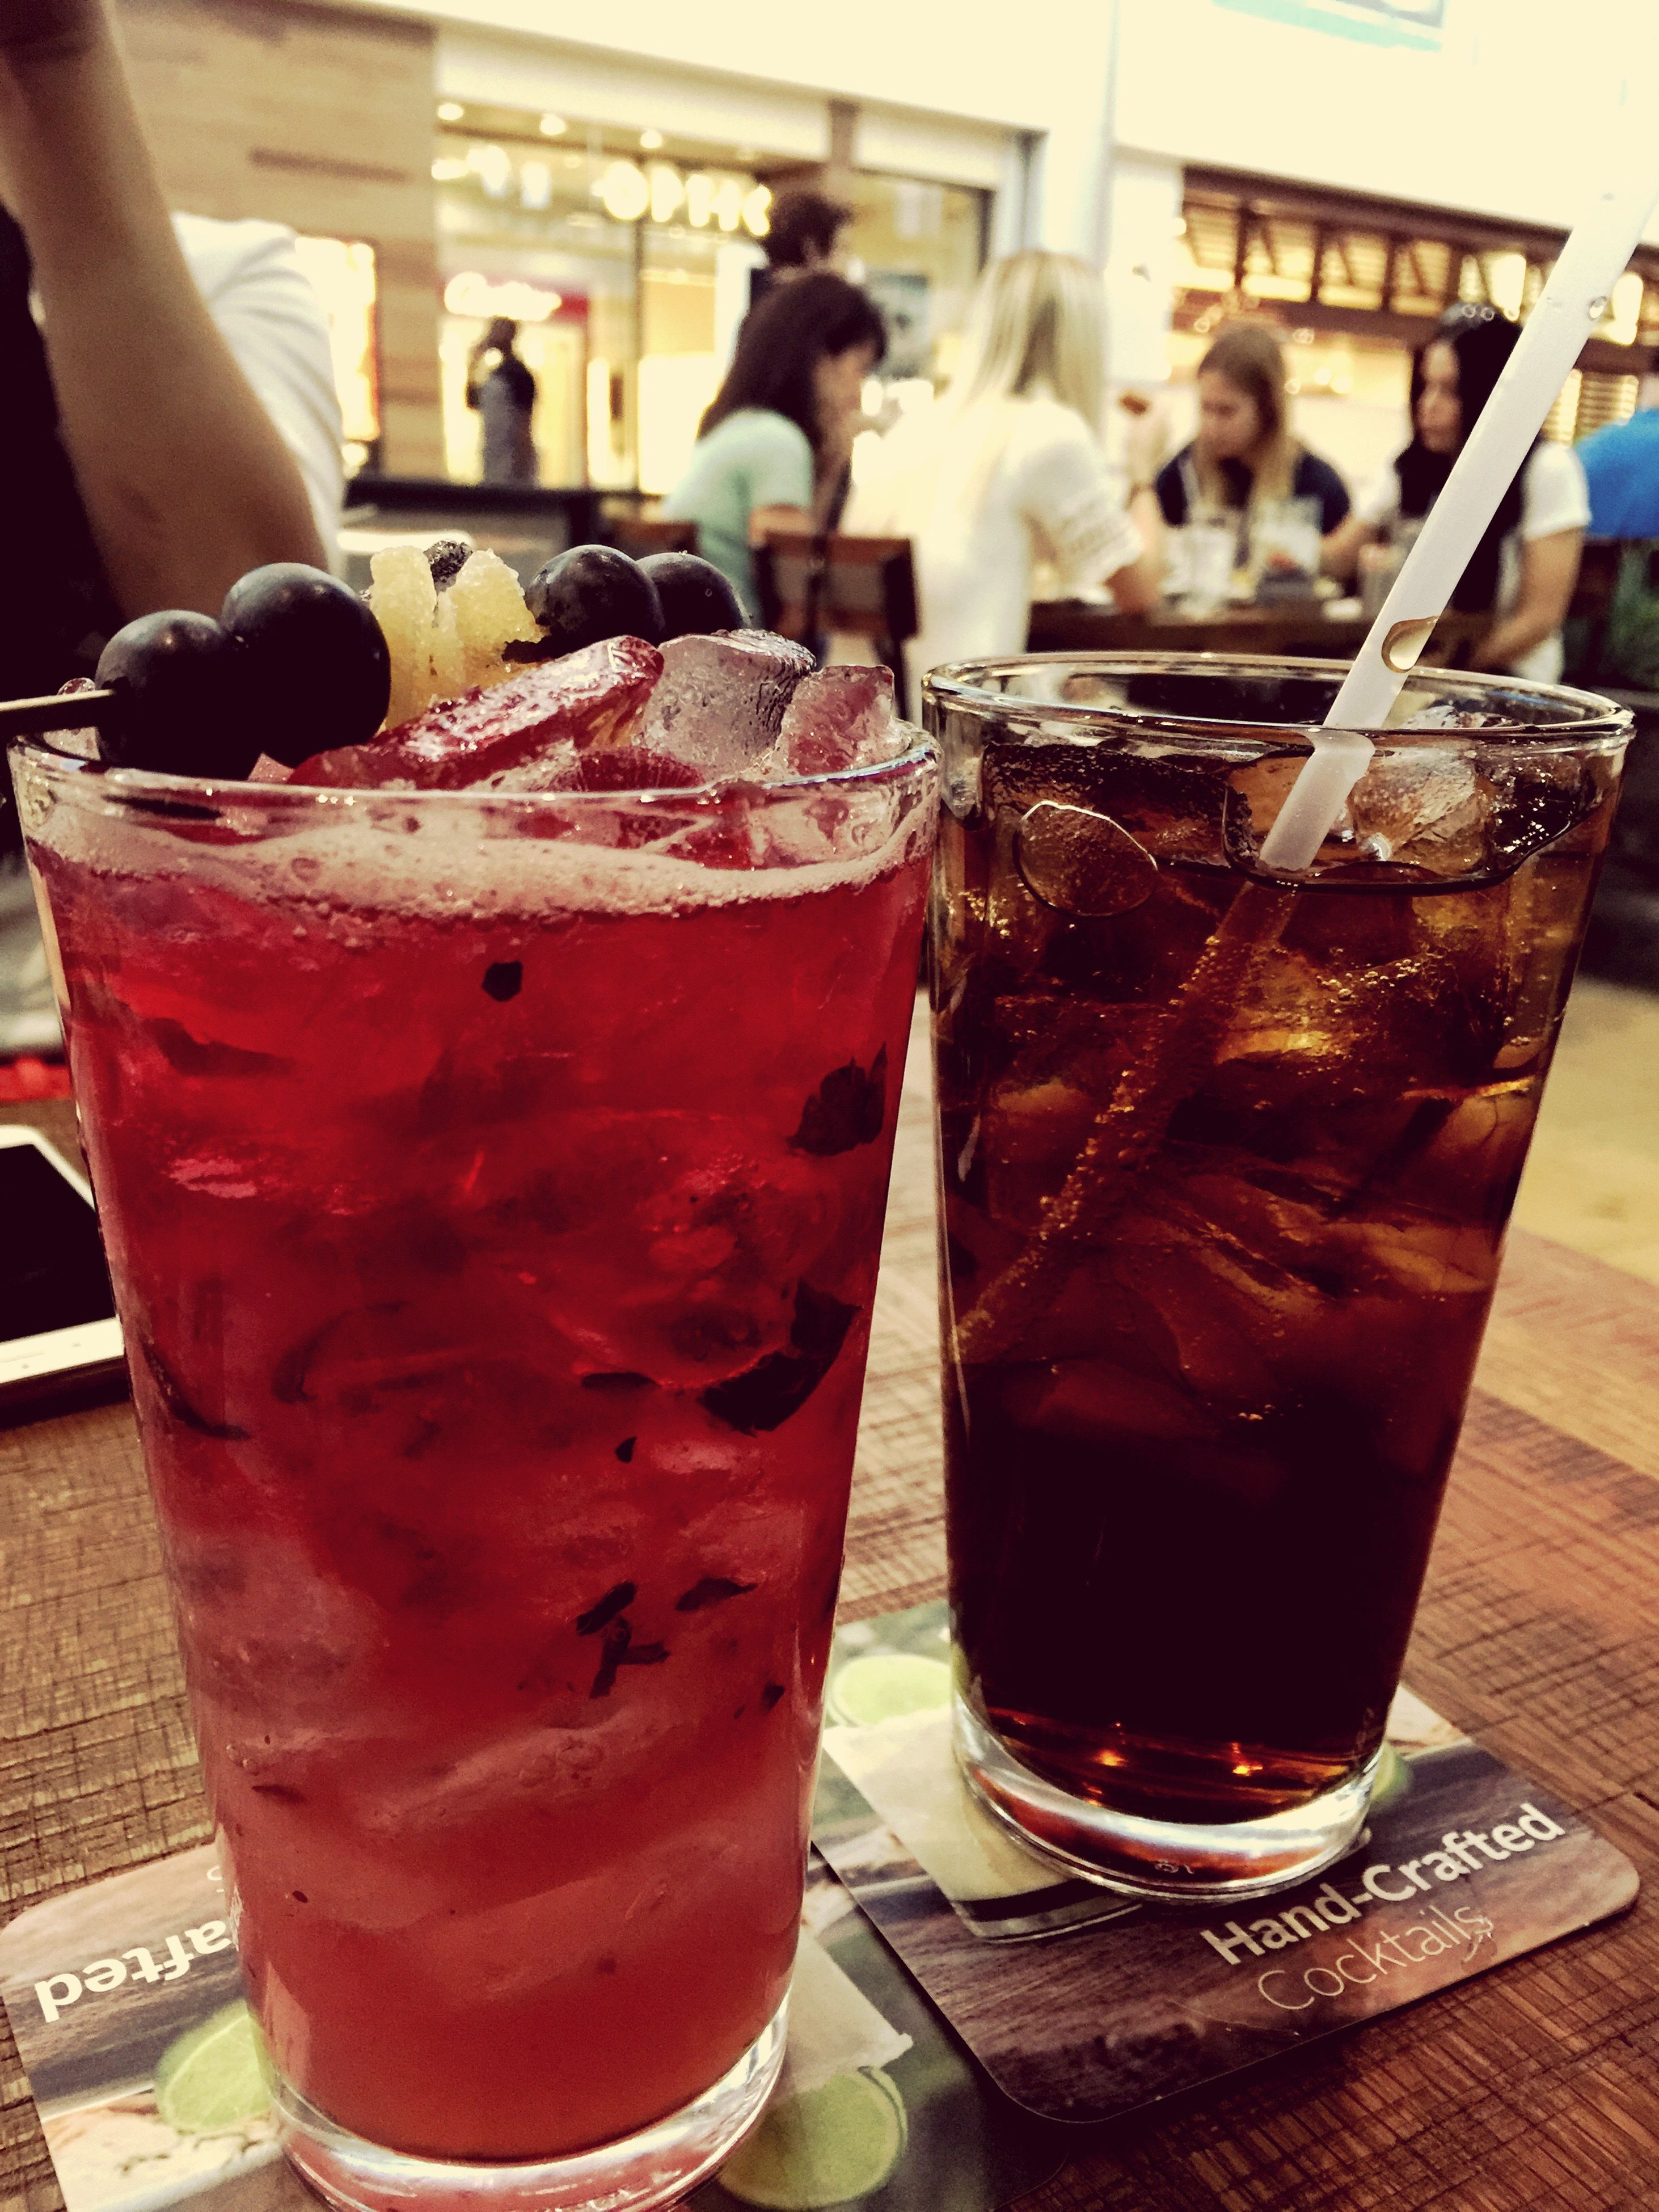 food and drink, drink, refreshment, drinking glass, freshness, table, indoors, alcohol, restaurant, close-up, glass - material, still life, juice, focus on foreground, drinking straw, glass, cocktail, incidental people, beer glass, ice cube